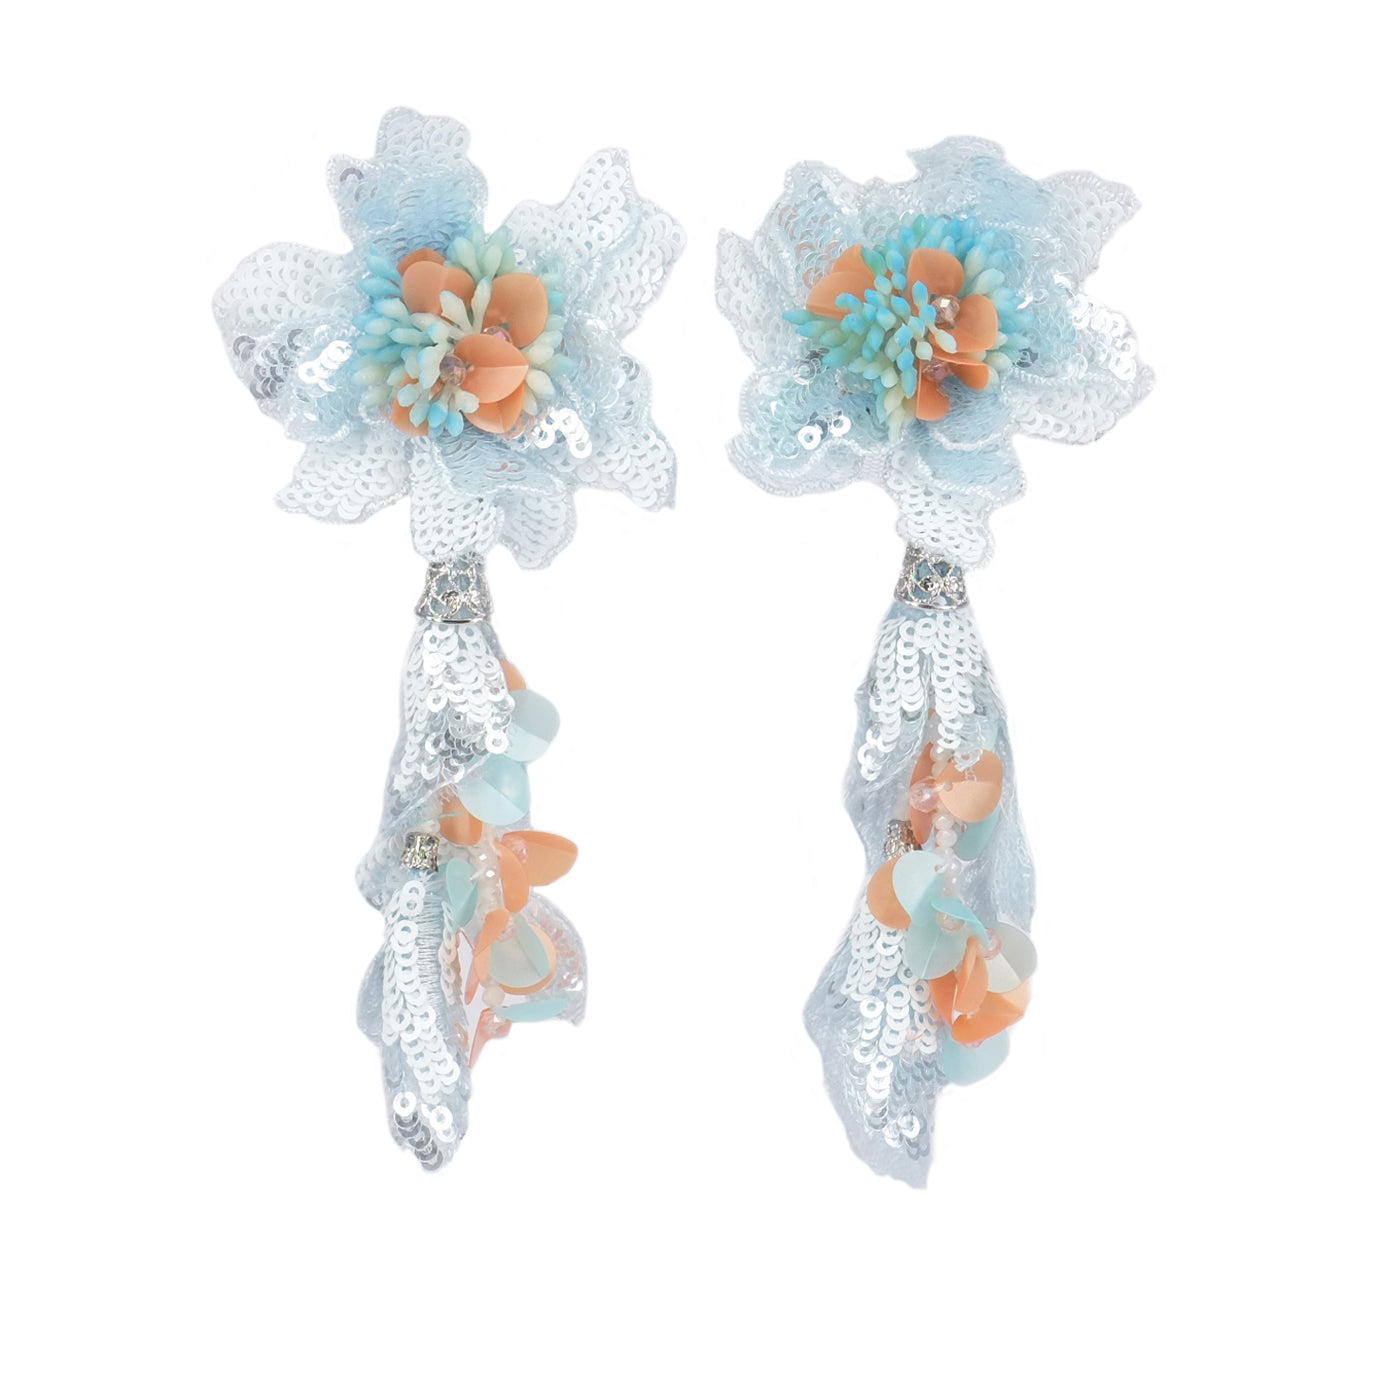 Starry Ray Tiffany Earrings - ADA PAT DESIGN